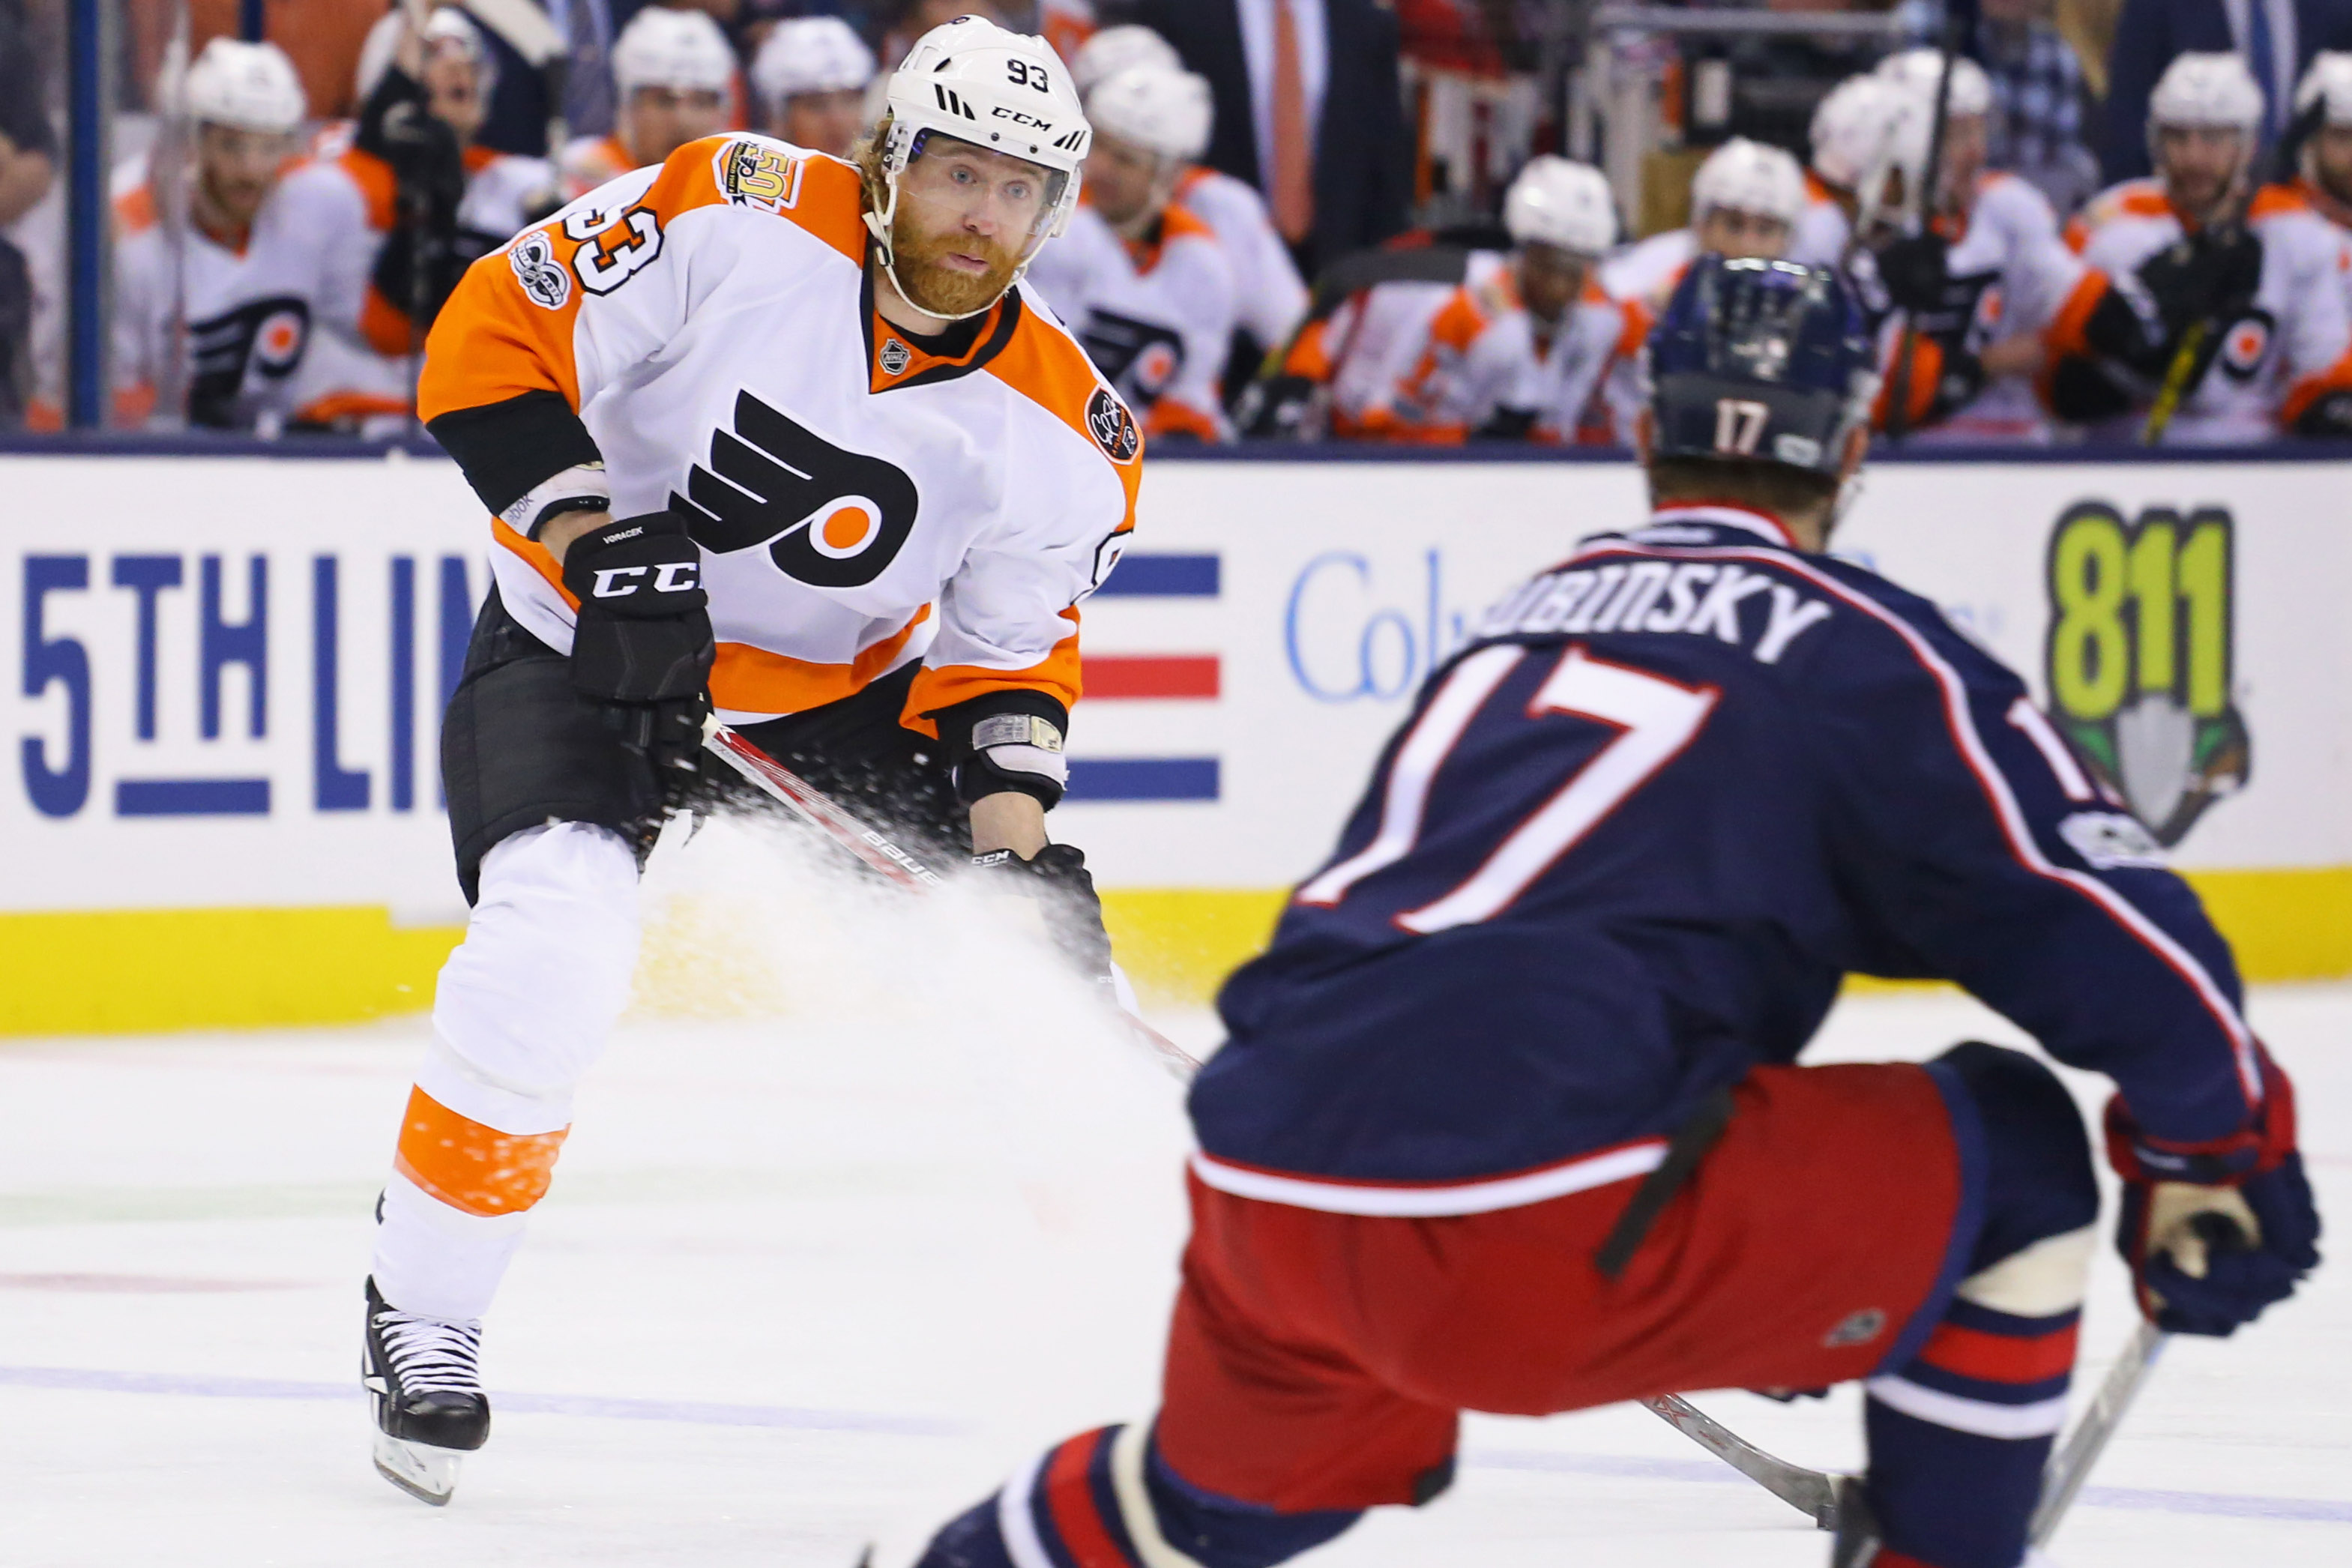 9989389-nhl-philadelphia-flyers-at-columbus-blue-jackets